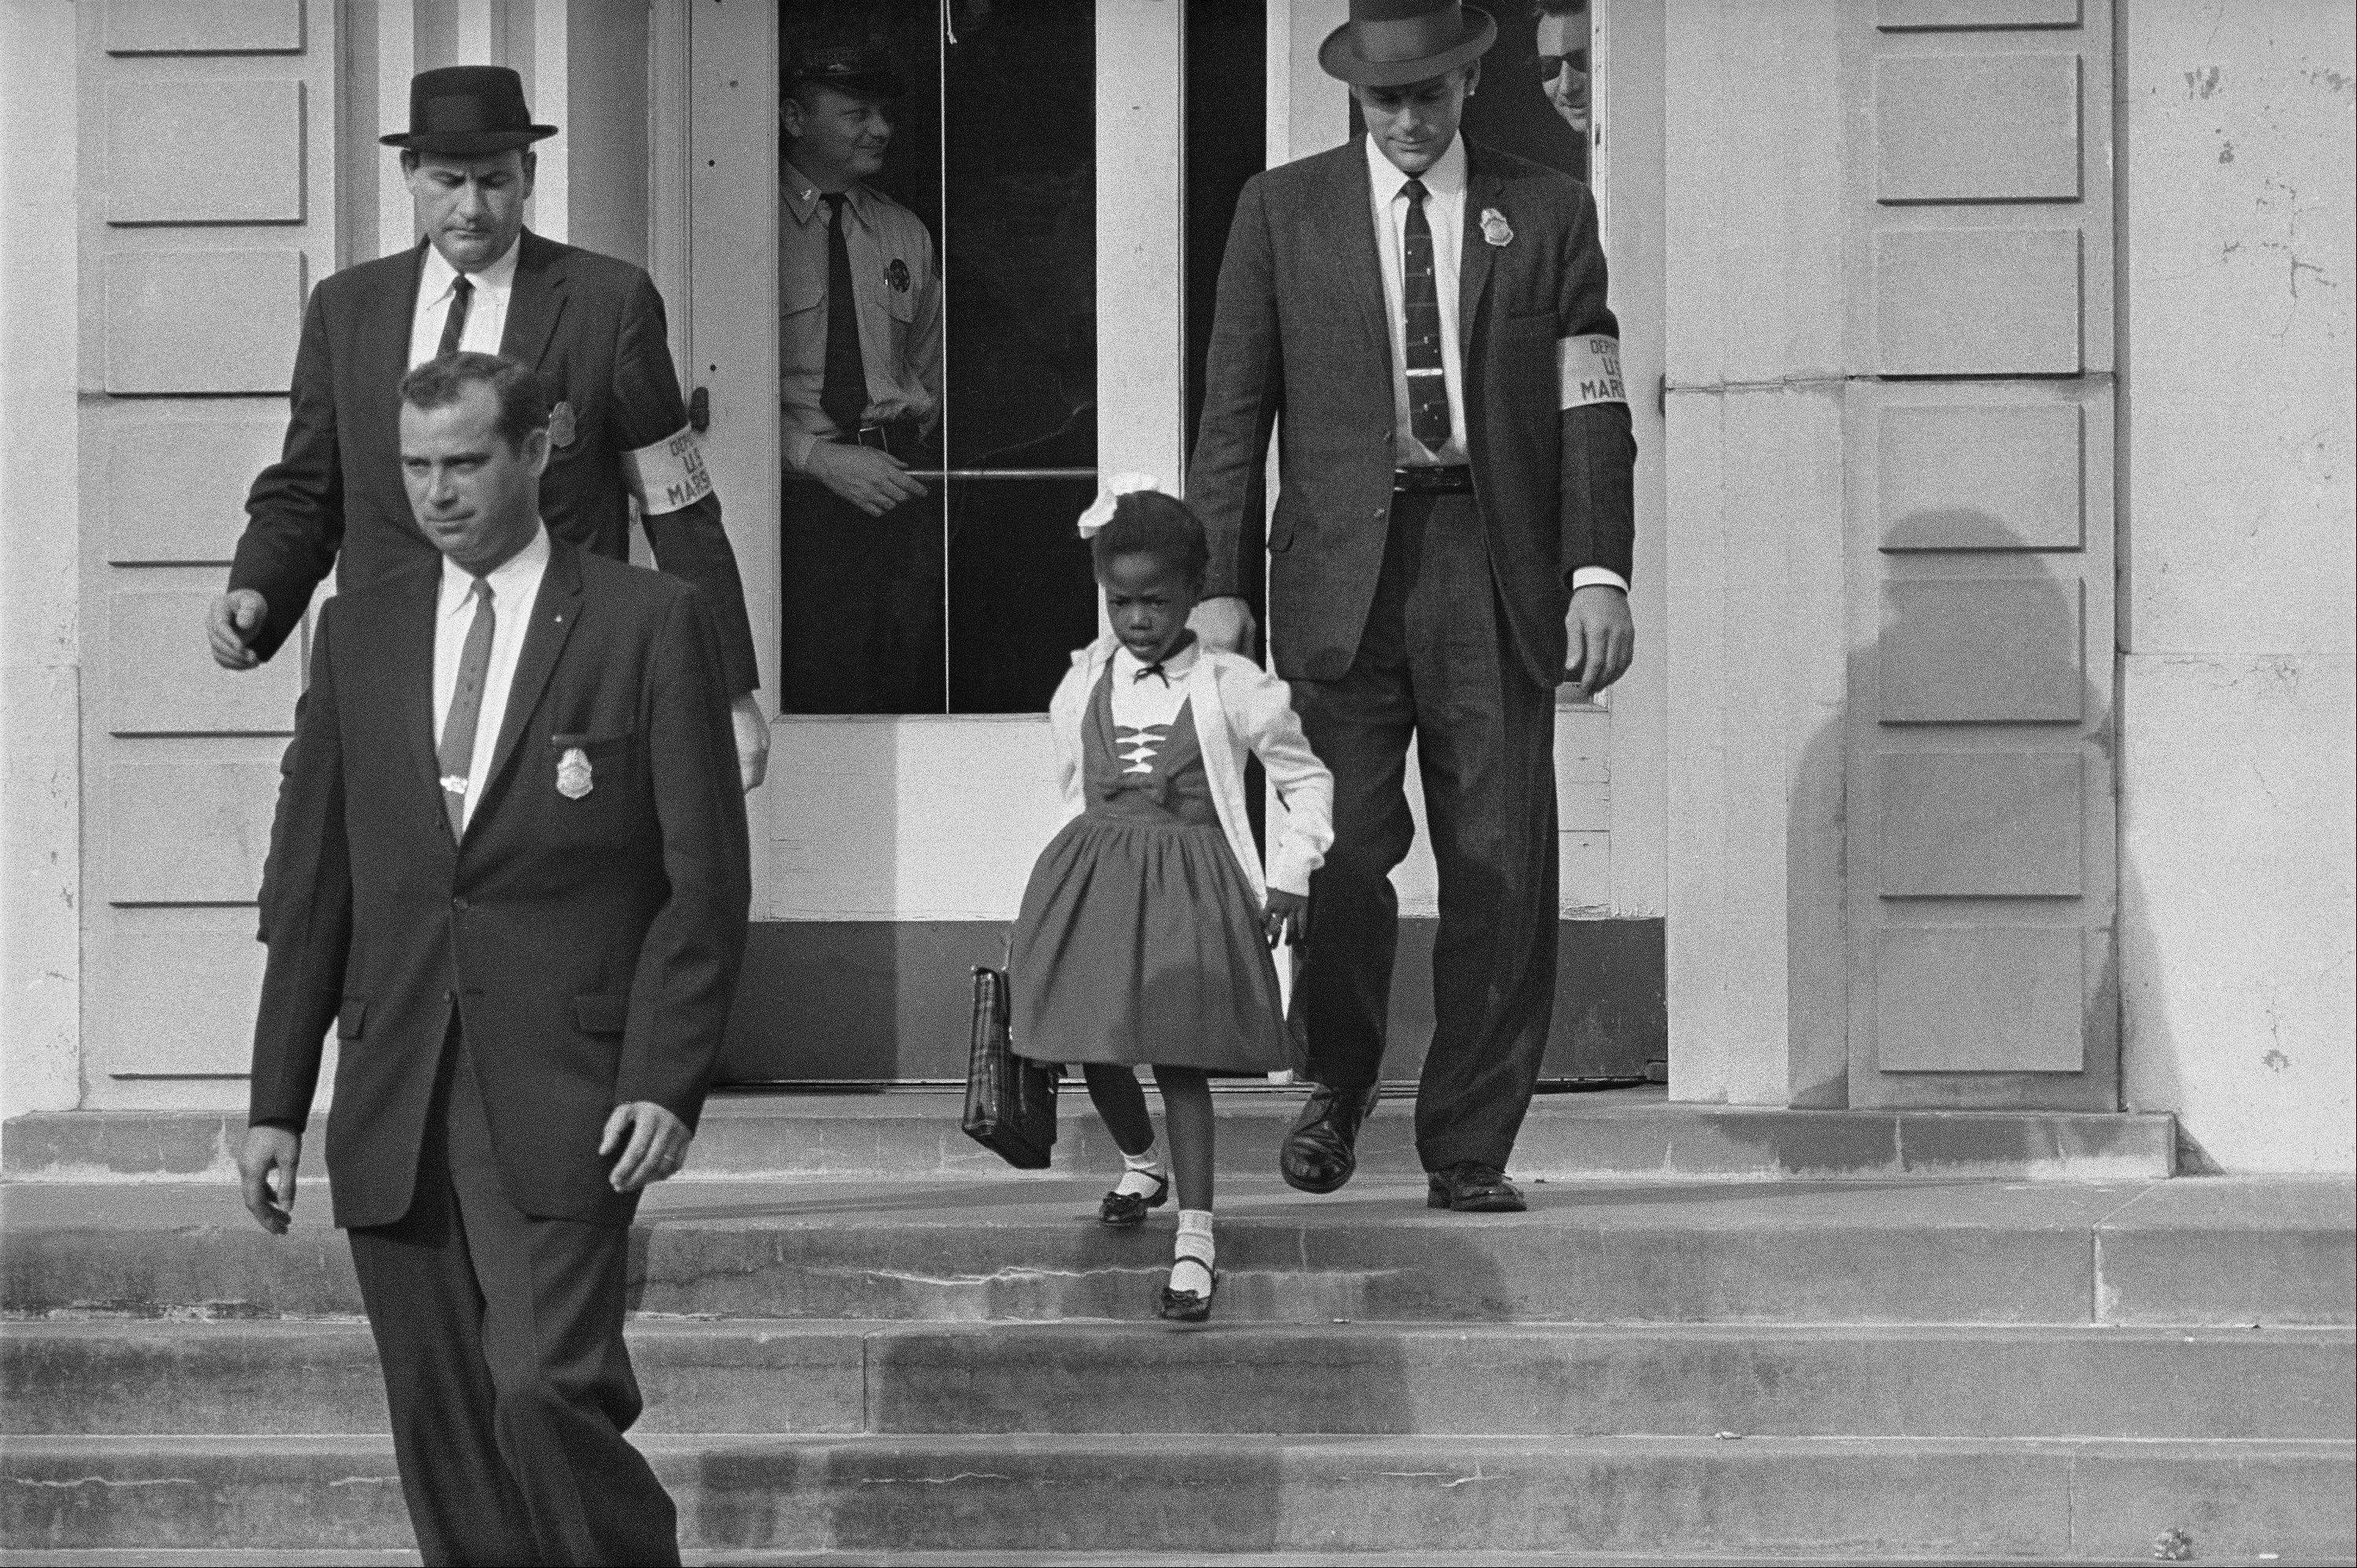 U.S. Deputy Marshals, including Charles Burks, top left, escort 6-year-old Ruby Bridges from William Frantz Elementary School in New Orleans, La. The first-grader was the only black child enrolled in the school.